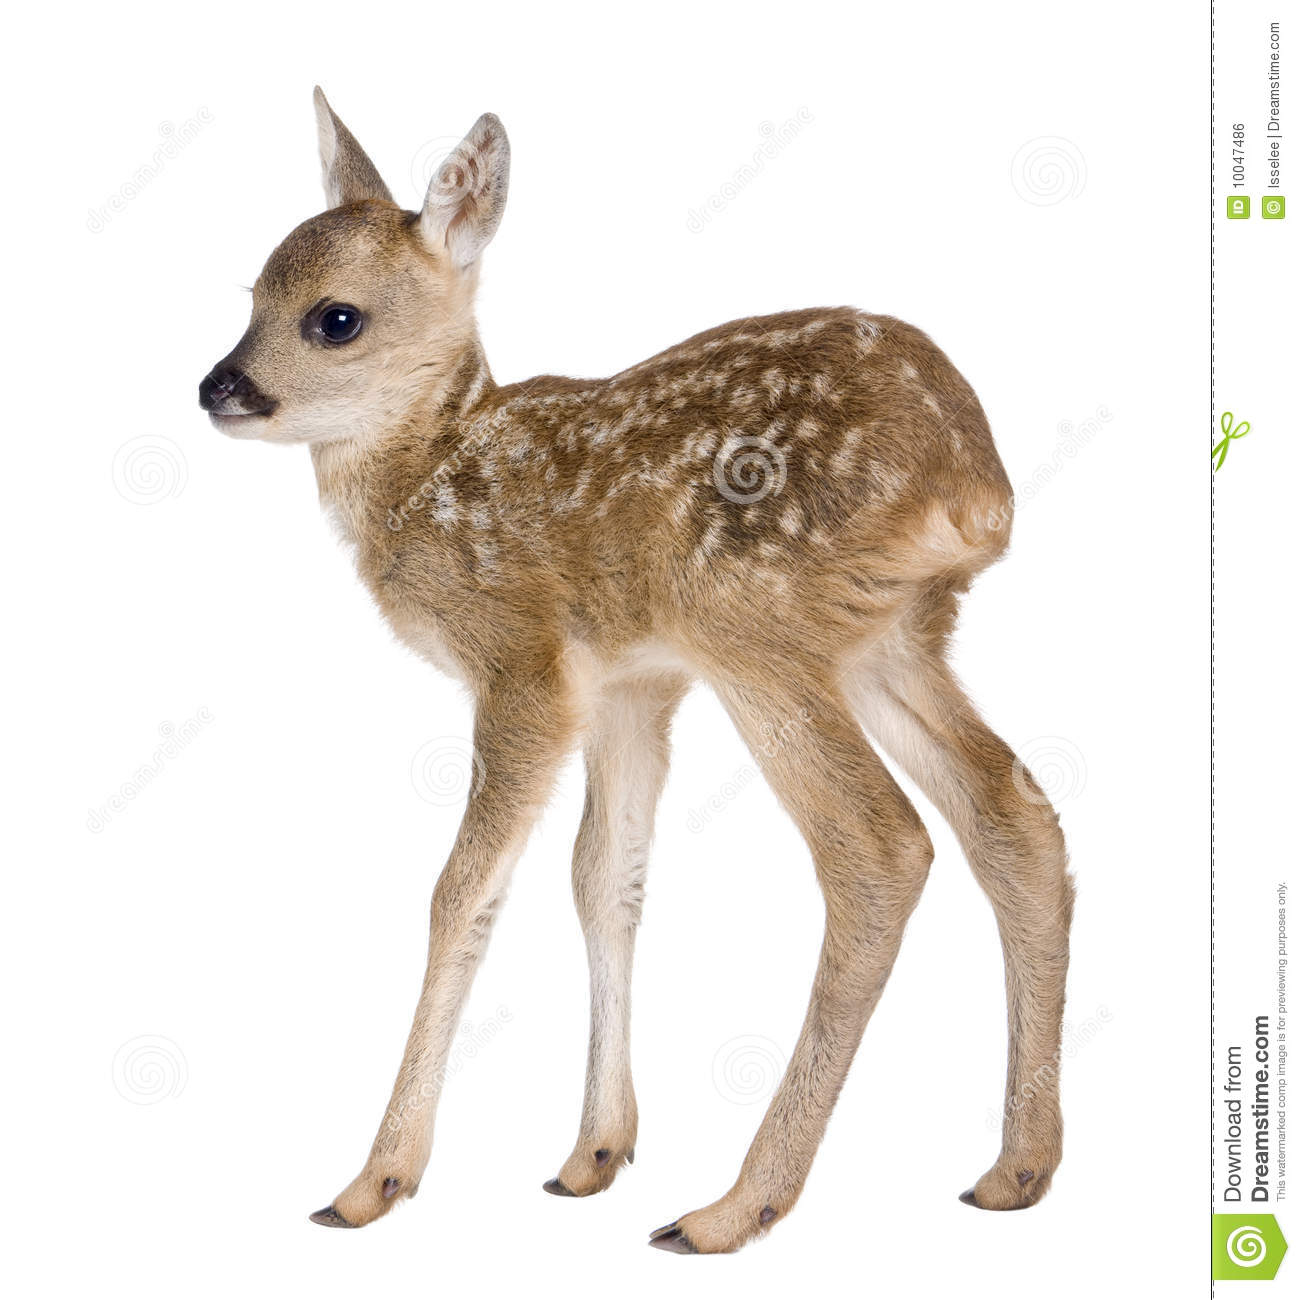 Royalty Free Stock Image  Roe Deer Fawn   Capreolus Capreolus  15 Days